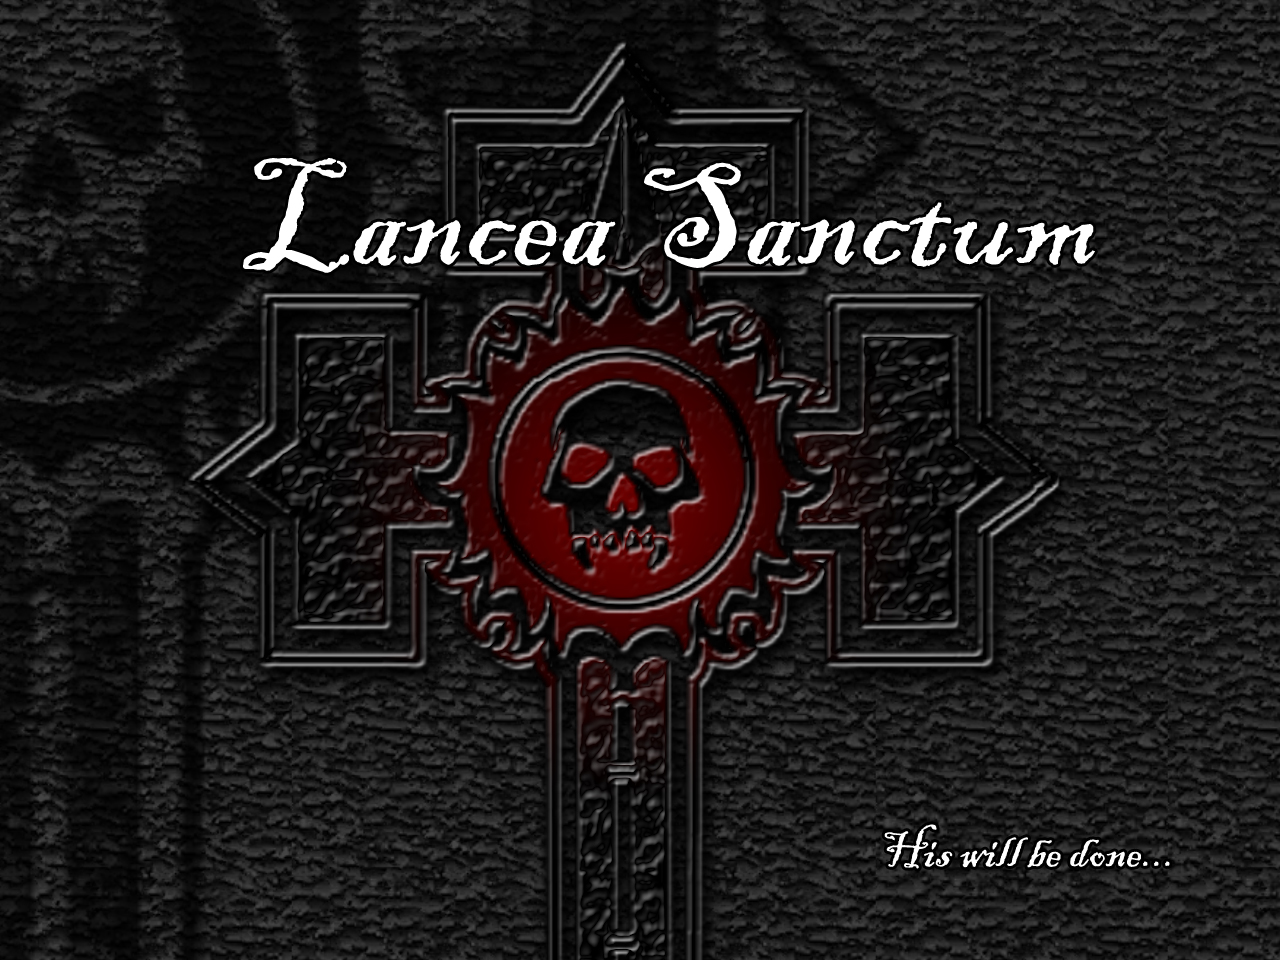 Lancea_Sanctum_Wallpaper_by_M1KH43L.jpg